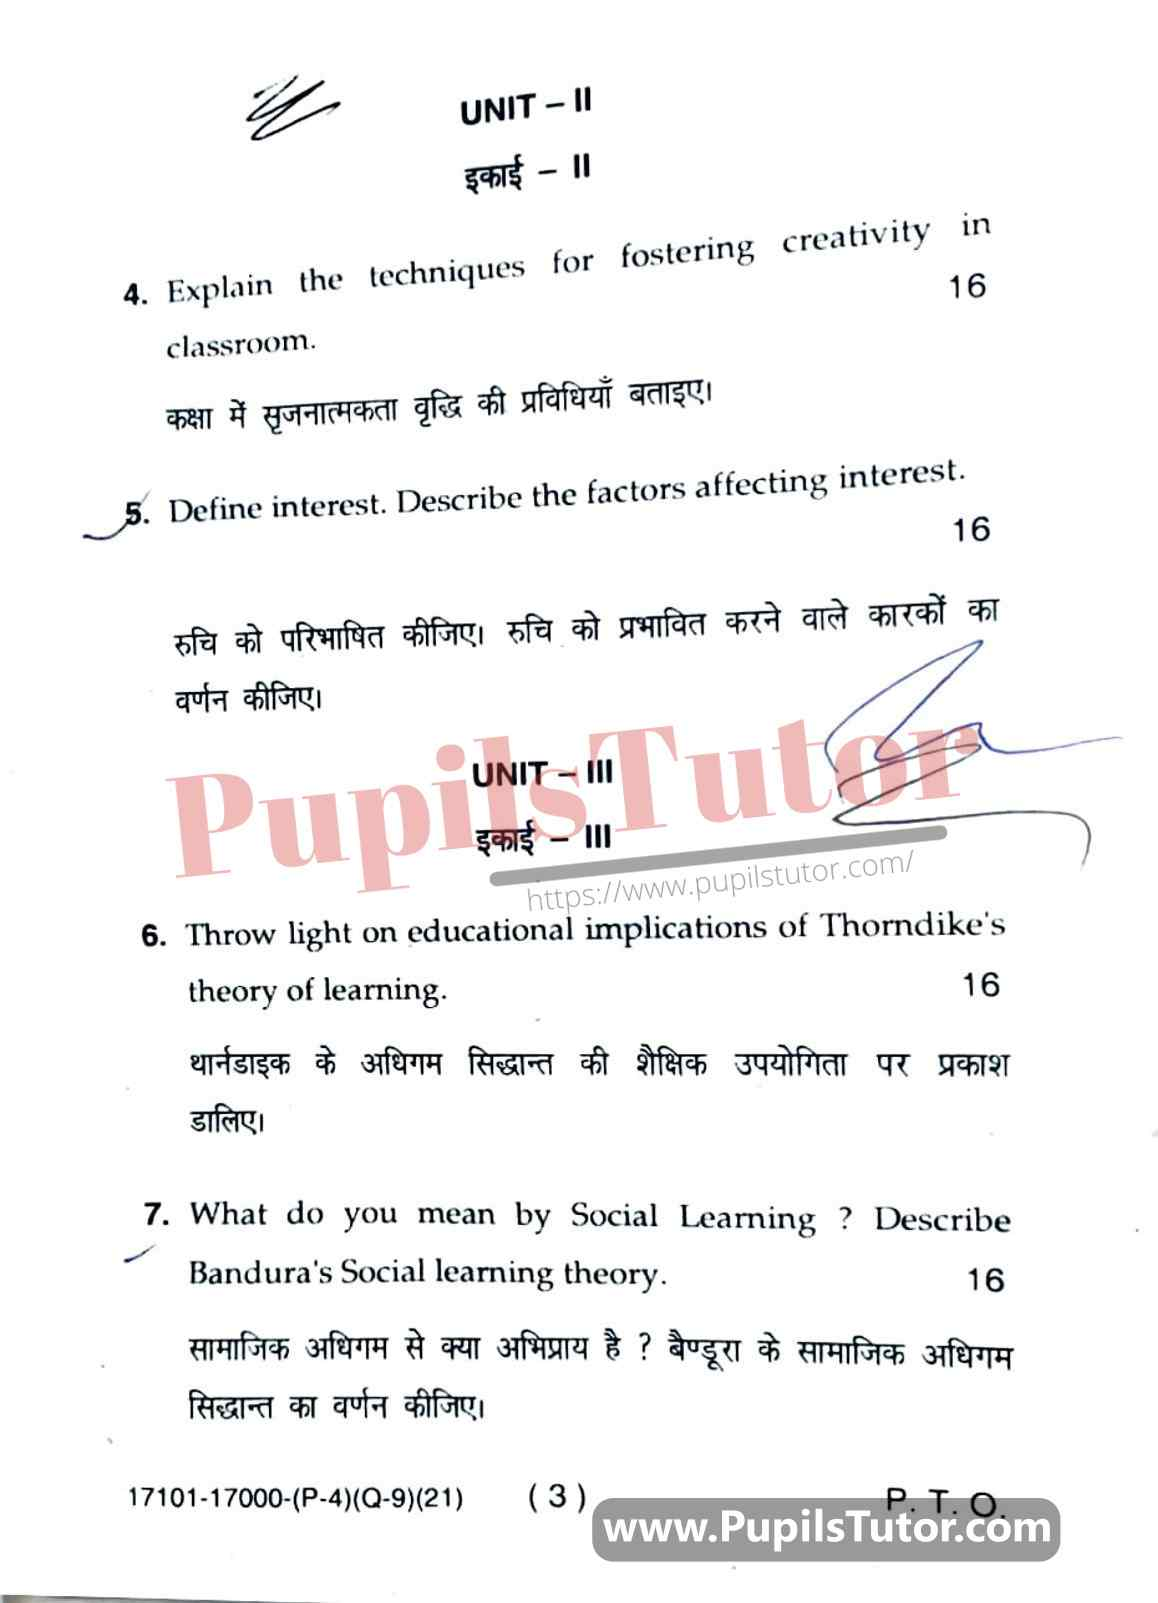 KUK (Kurukshetra University, Haryana) Childhood And Growing Up Question Paper 2021 For B.Ed 1st And 2nd Year And All The 4 Semesters In English And Hindi Medium Free Download PDF - Page 3 - pupilstutor